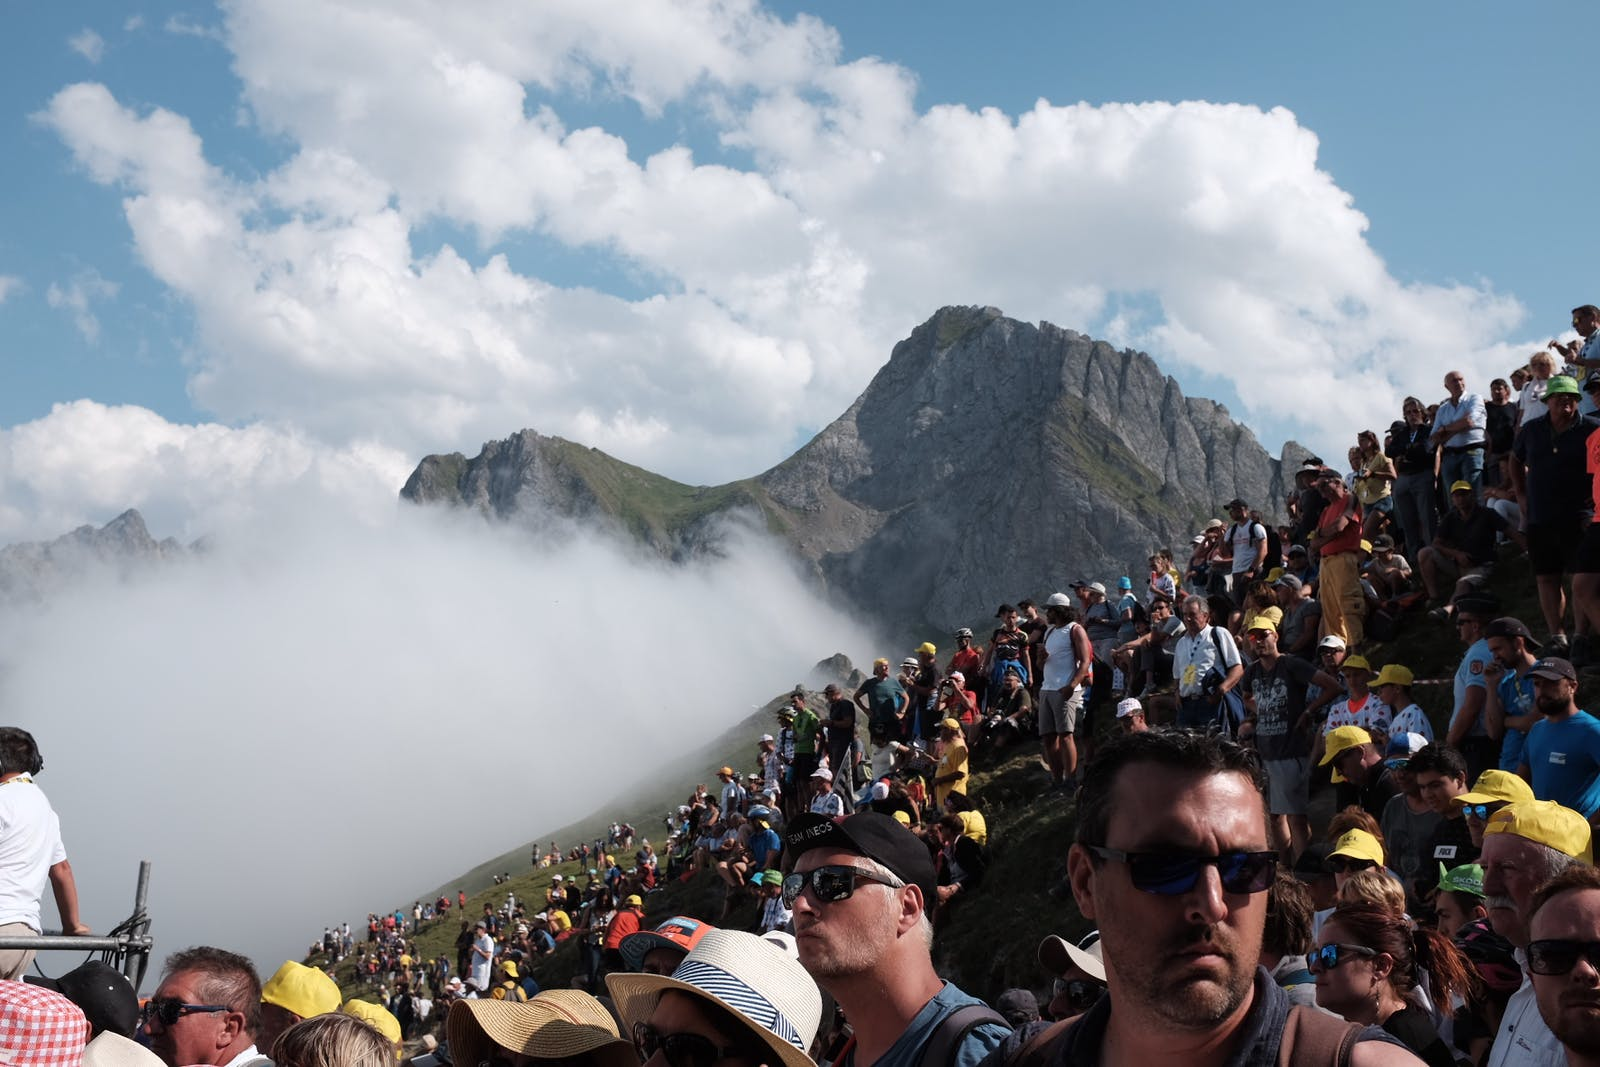 Fans on the mountainside